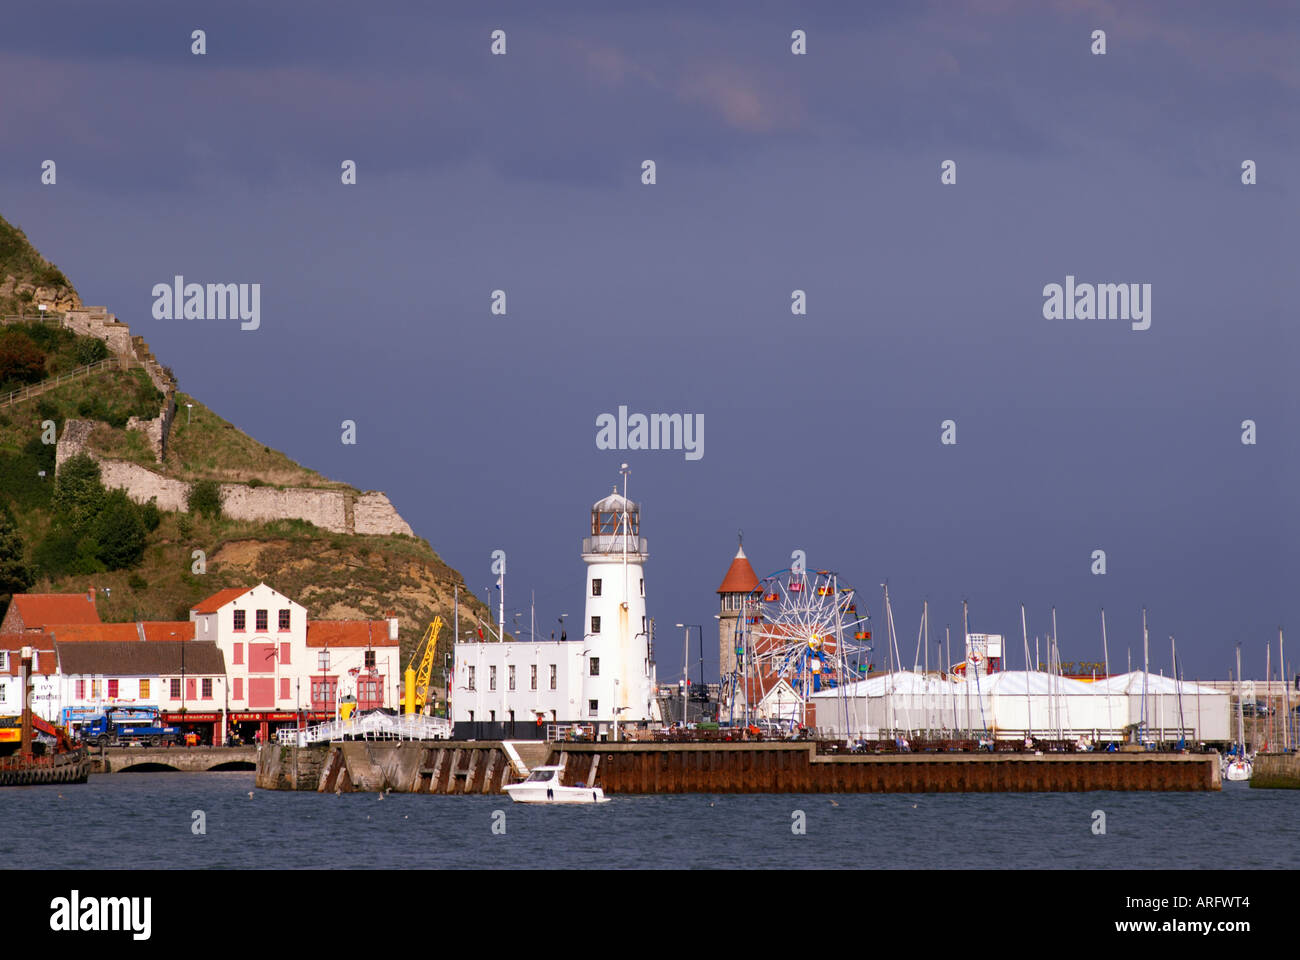 Funfair  and amusements in Scarborough in 'North Yorkshire' 'Great Britain' - Stock Image